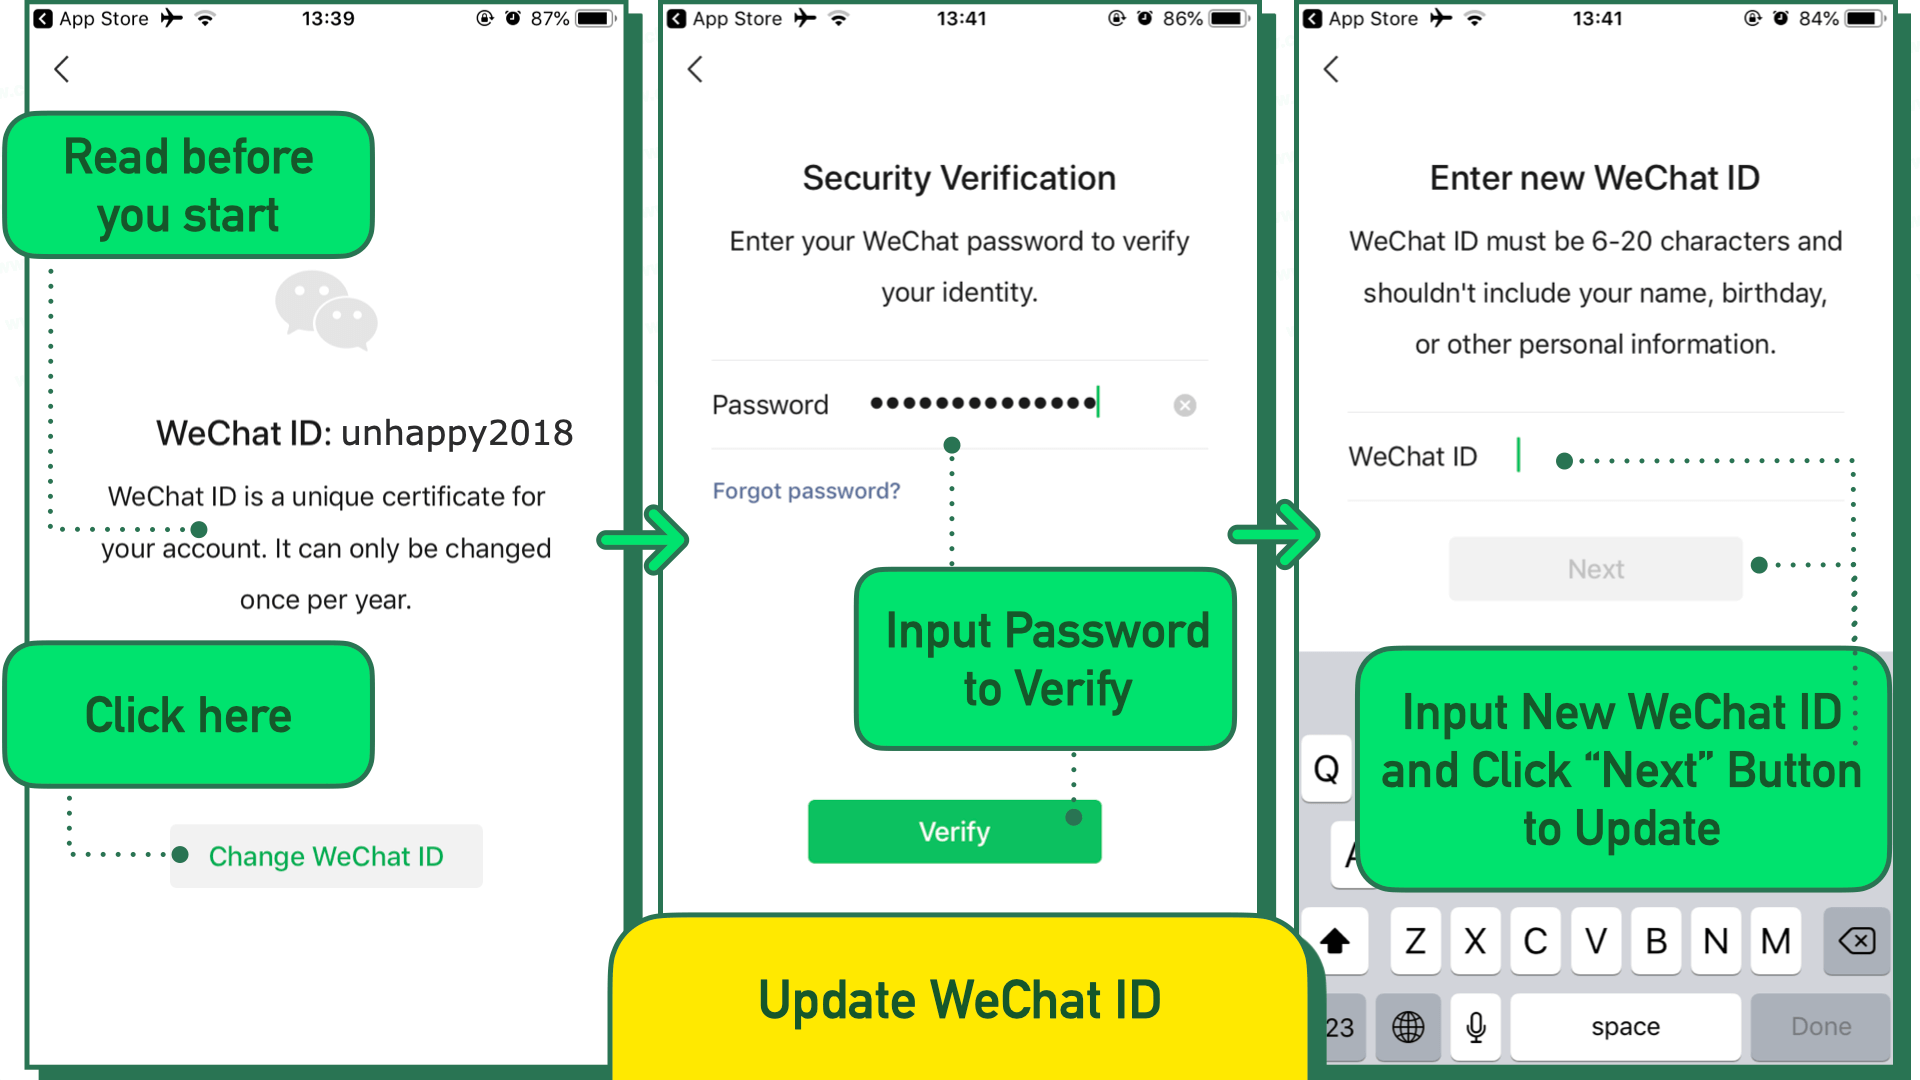 How to Change and update WeChat ID 2020